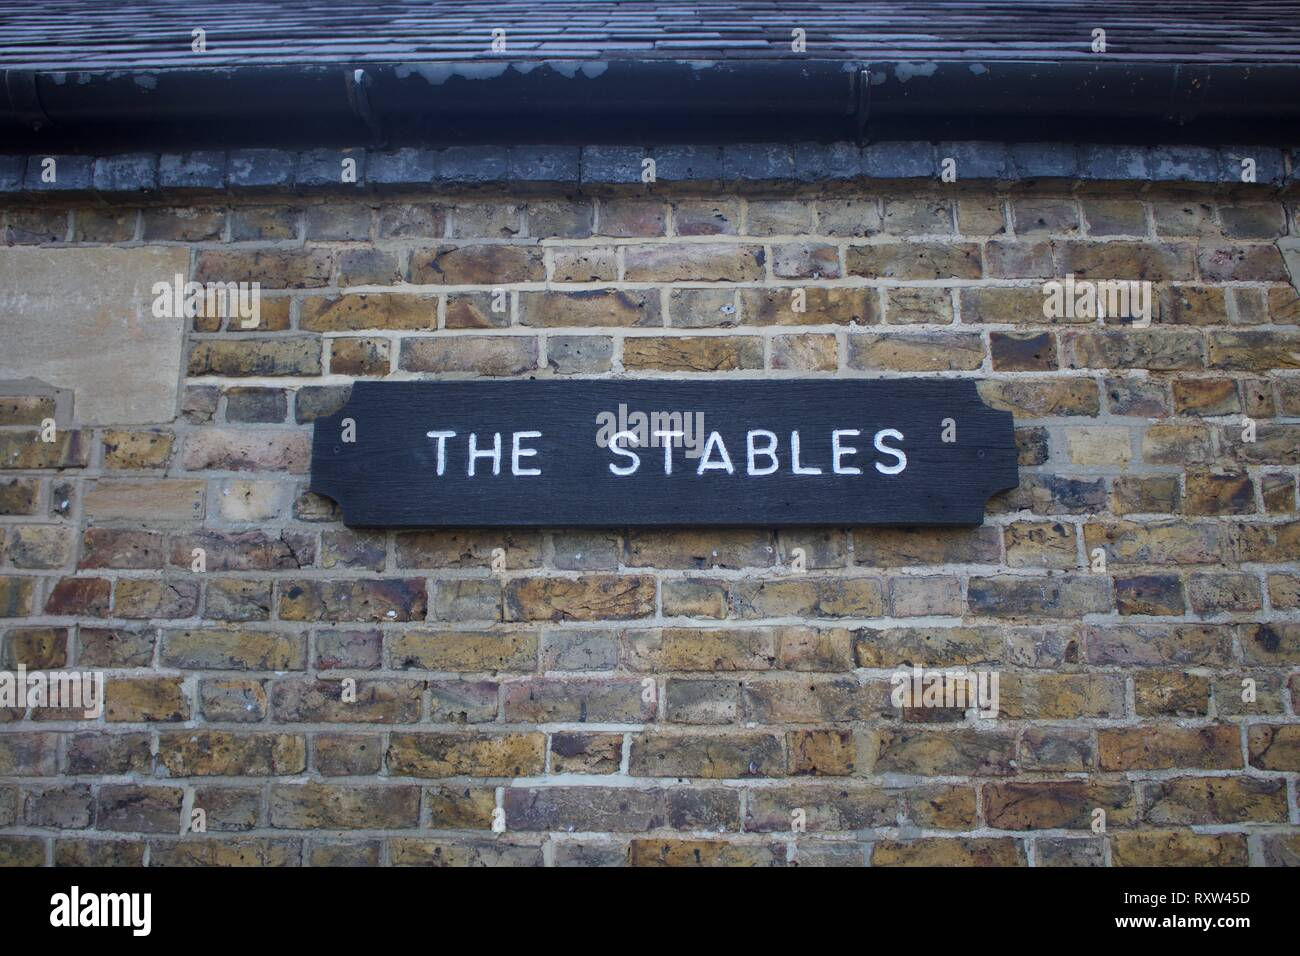 Wooden sign for The Tables with white lettering on black background against a brick wall - Stock Image